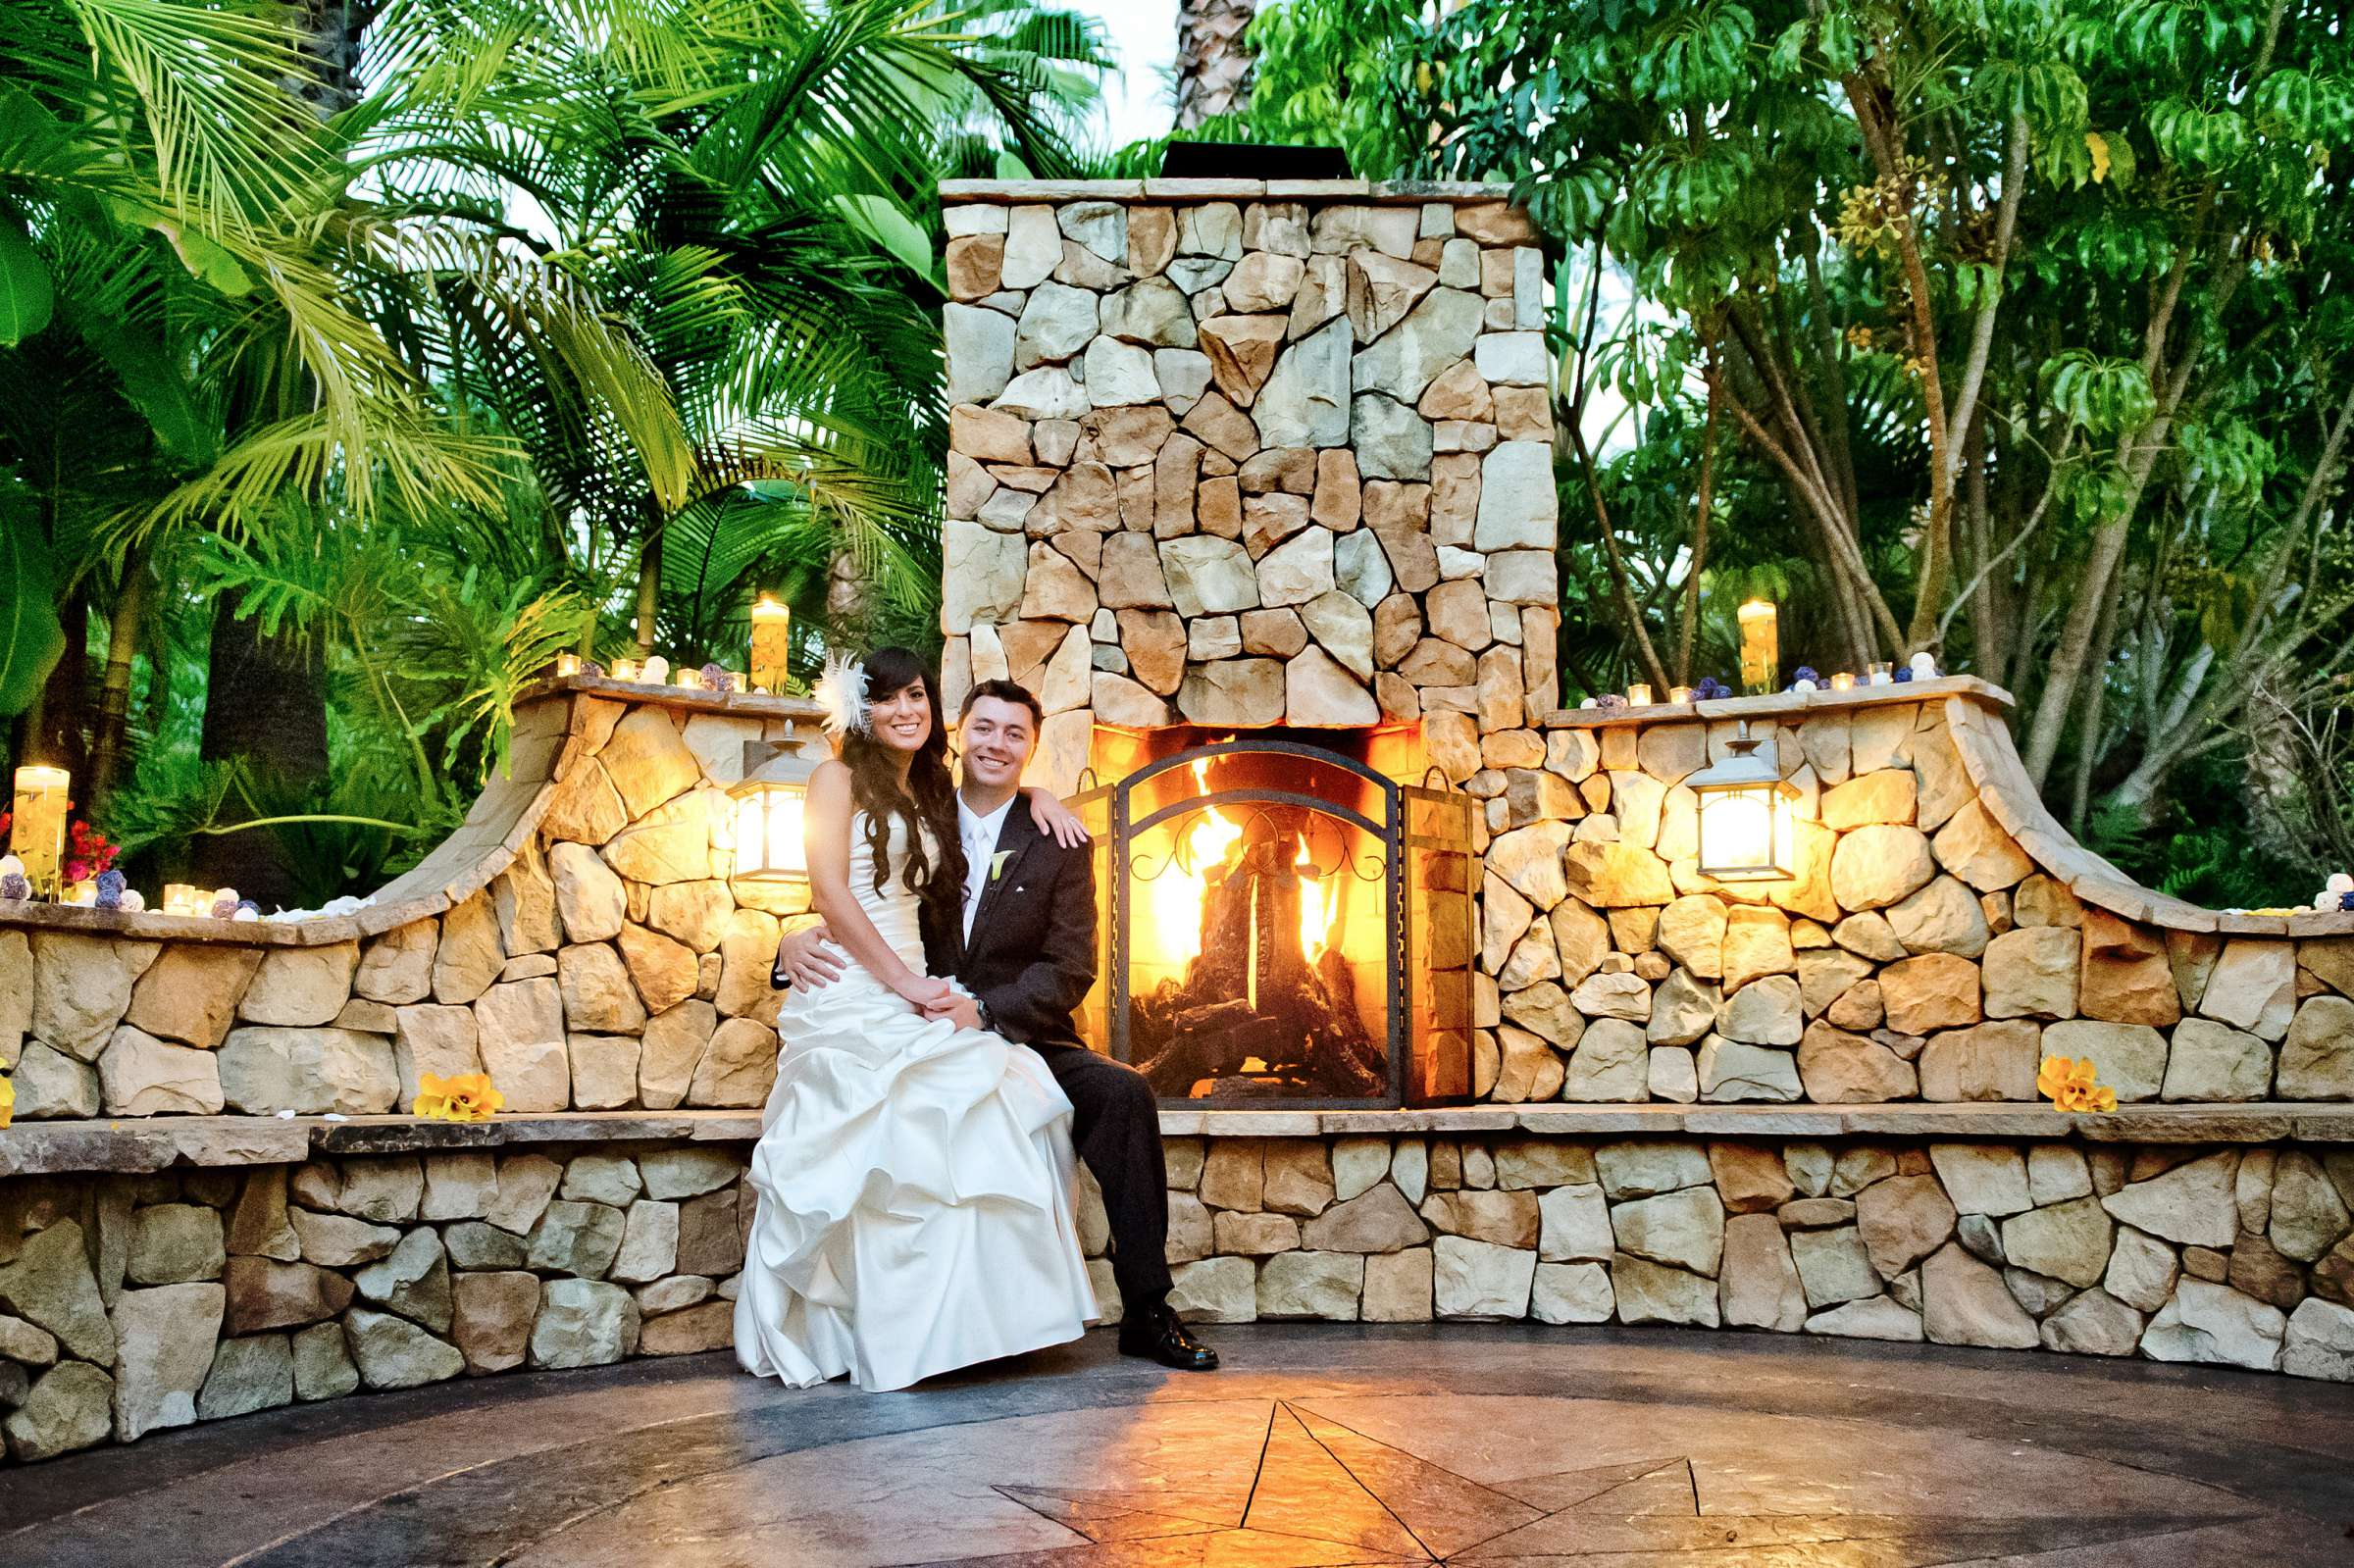 Grand Tradition Estate Wedding, Sharlene and Tony Wedding Photo #319506 by True Photography